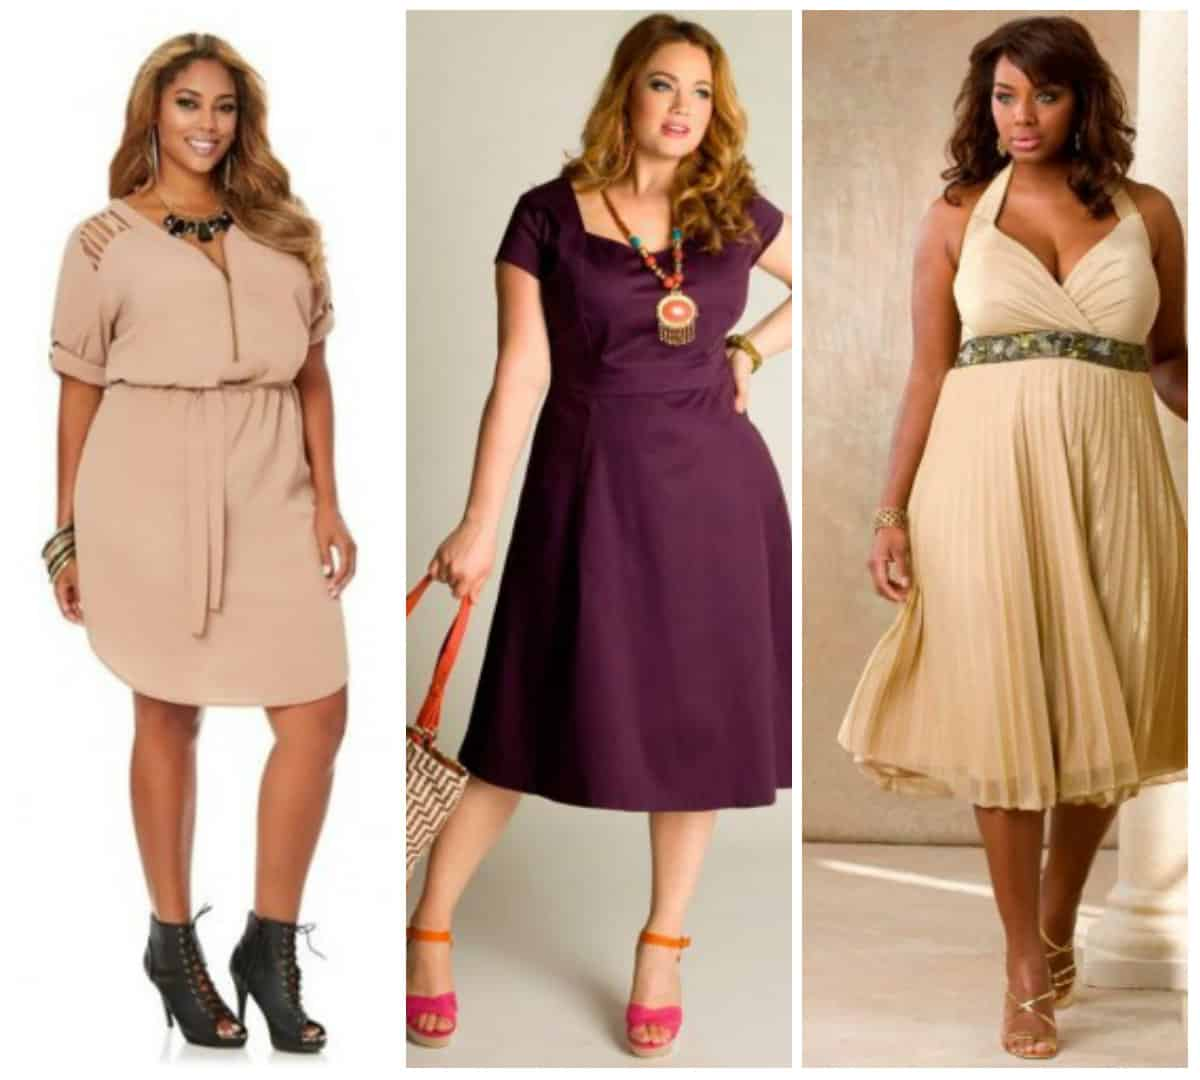 Women\'s plus size clothing trends Spring Summer 2016 - DRESS TRENDS